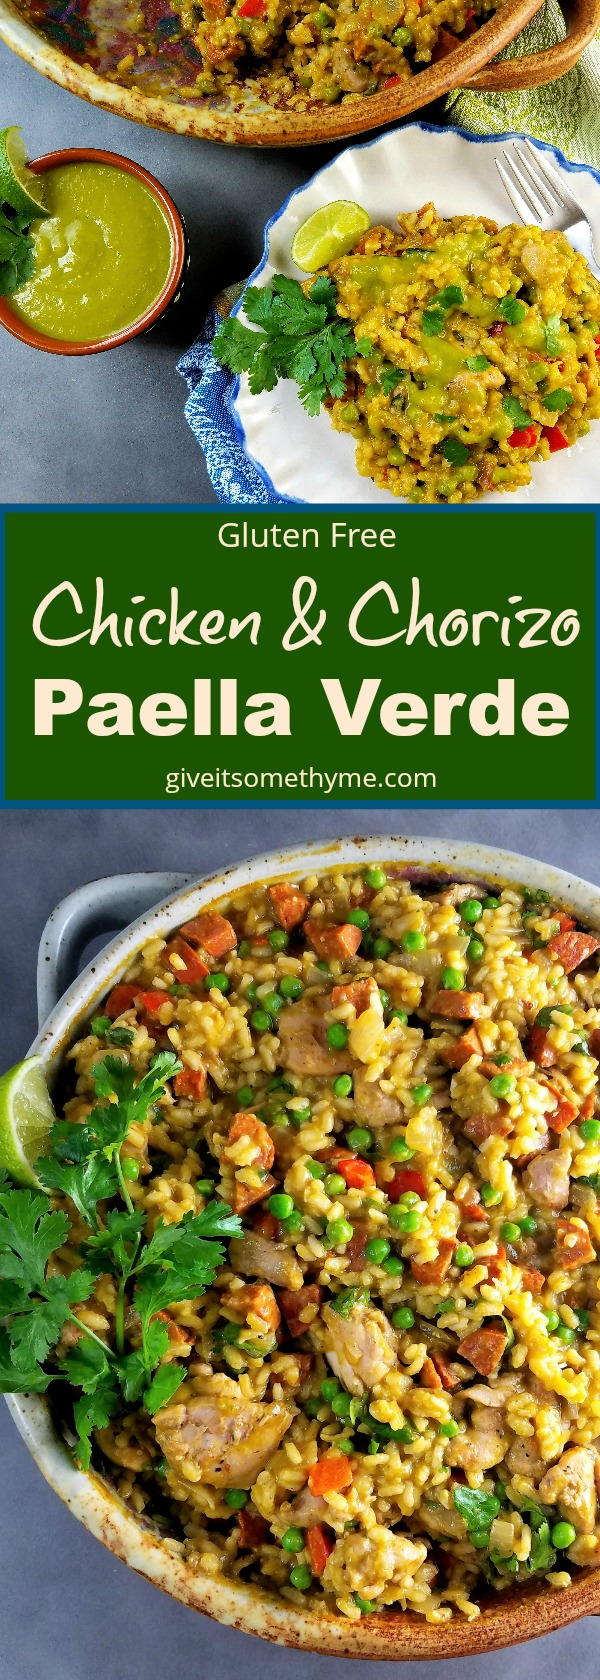 Chicken & Chorizo Paella Verde - Give it Some Thyme